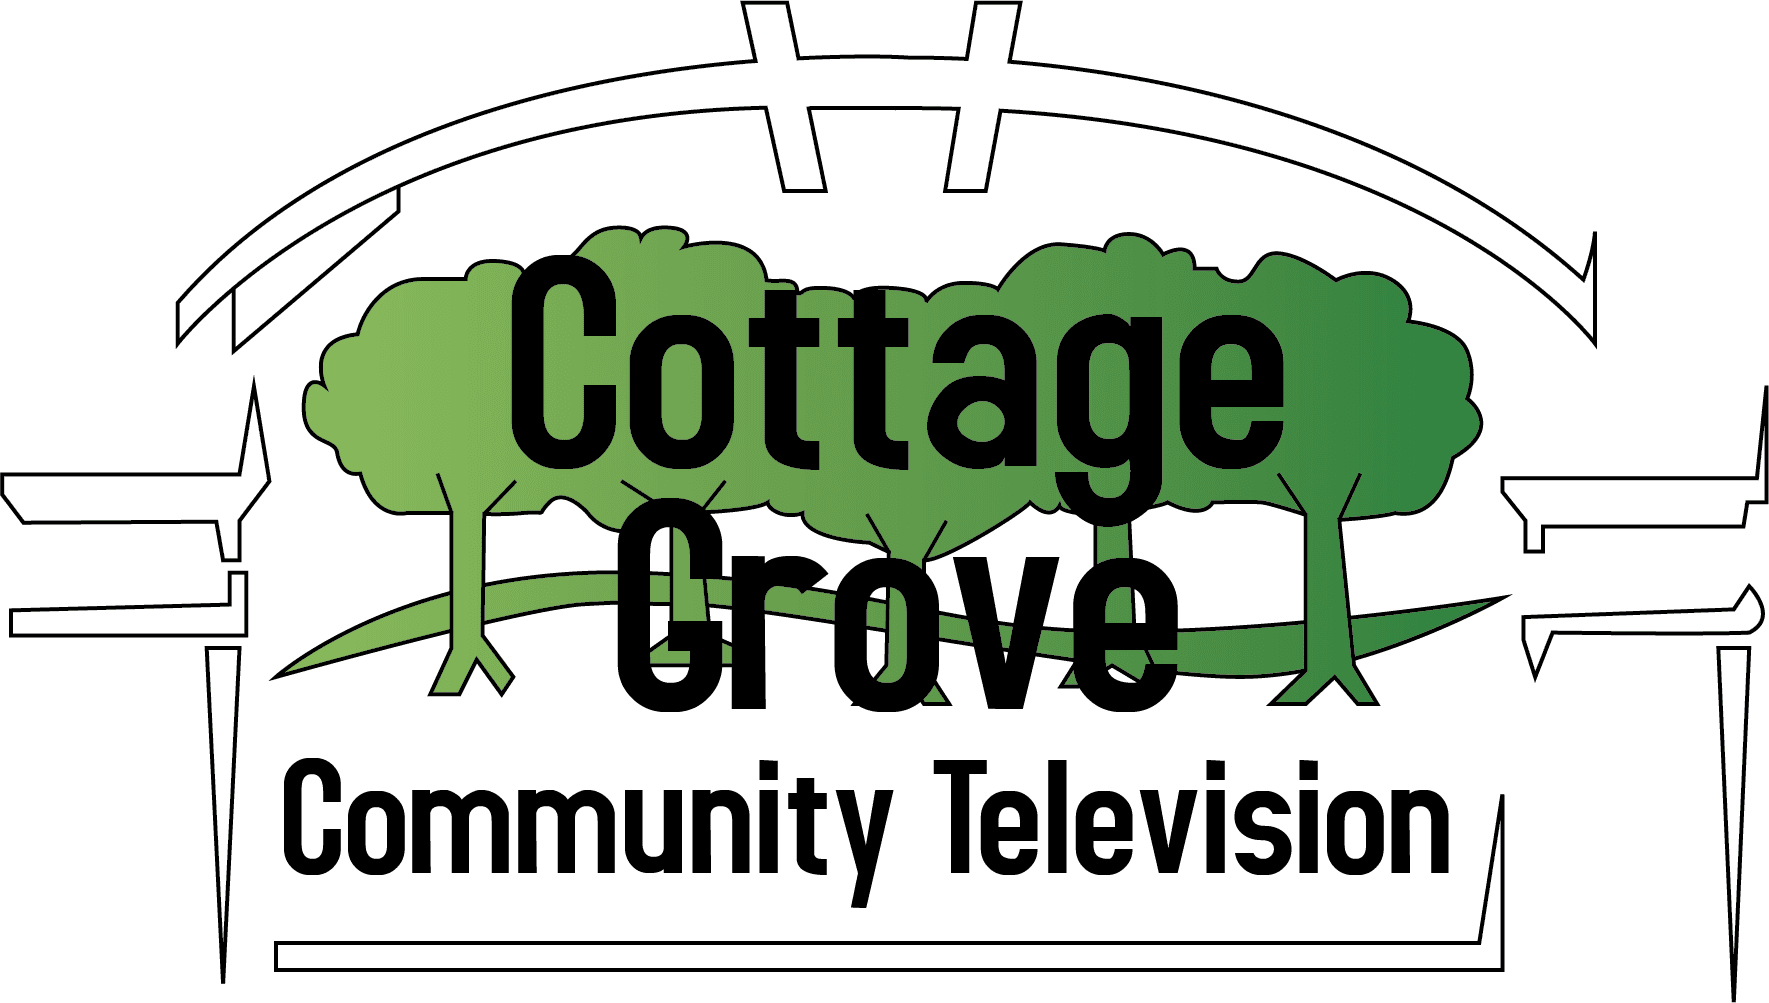 Cottage Grove Community Television